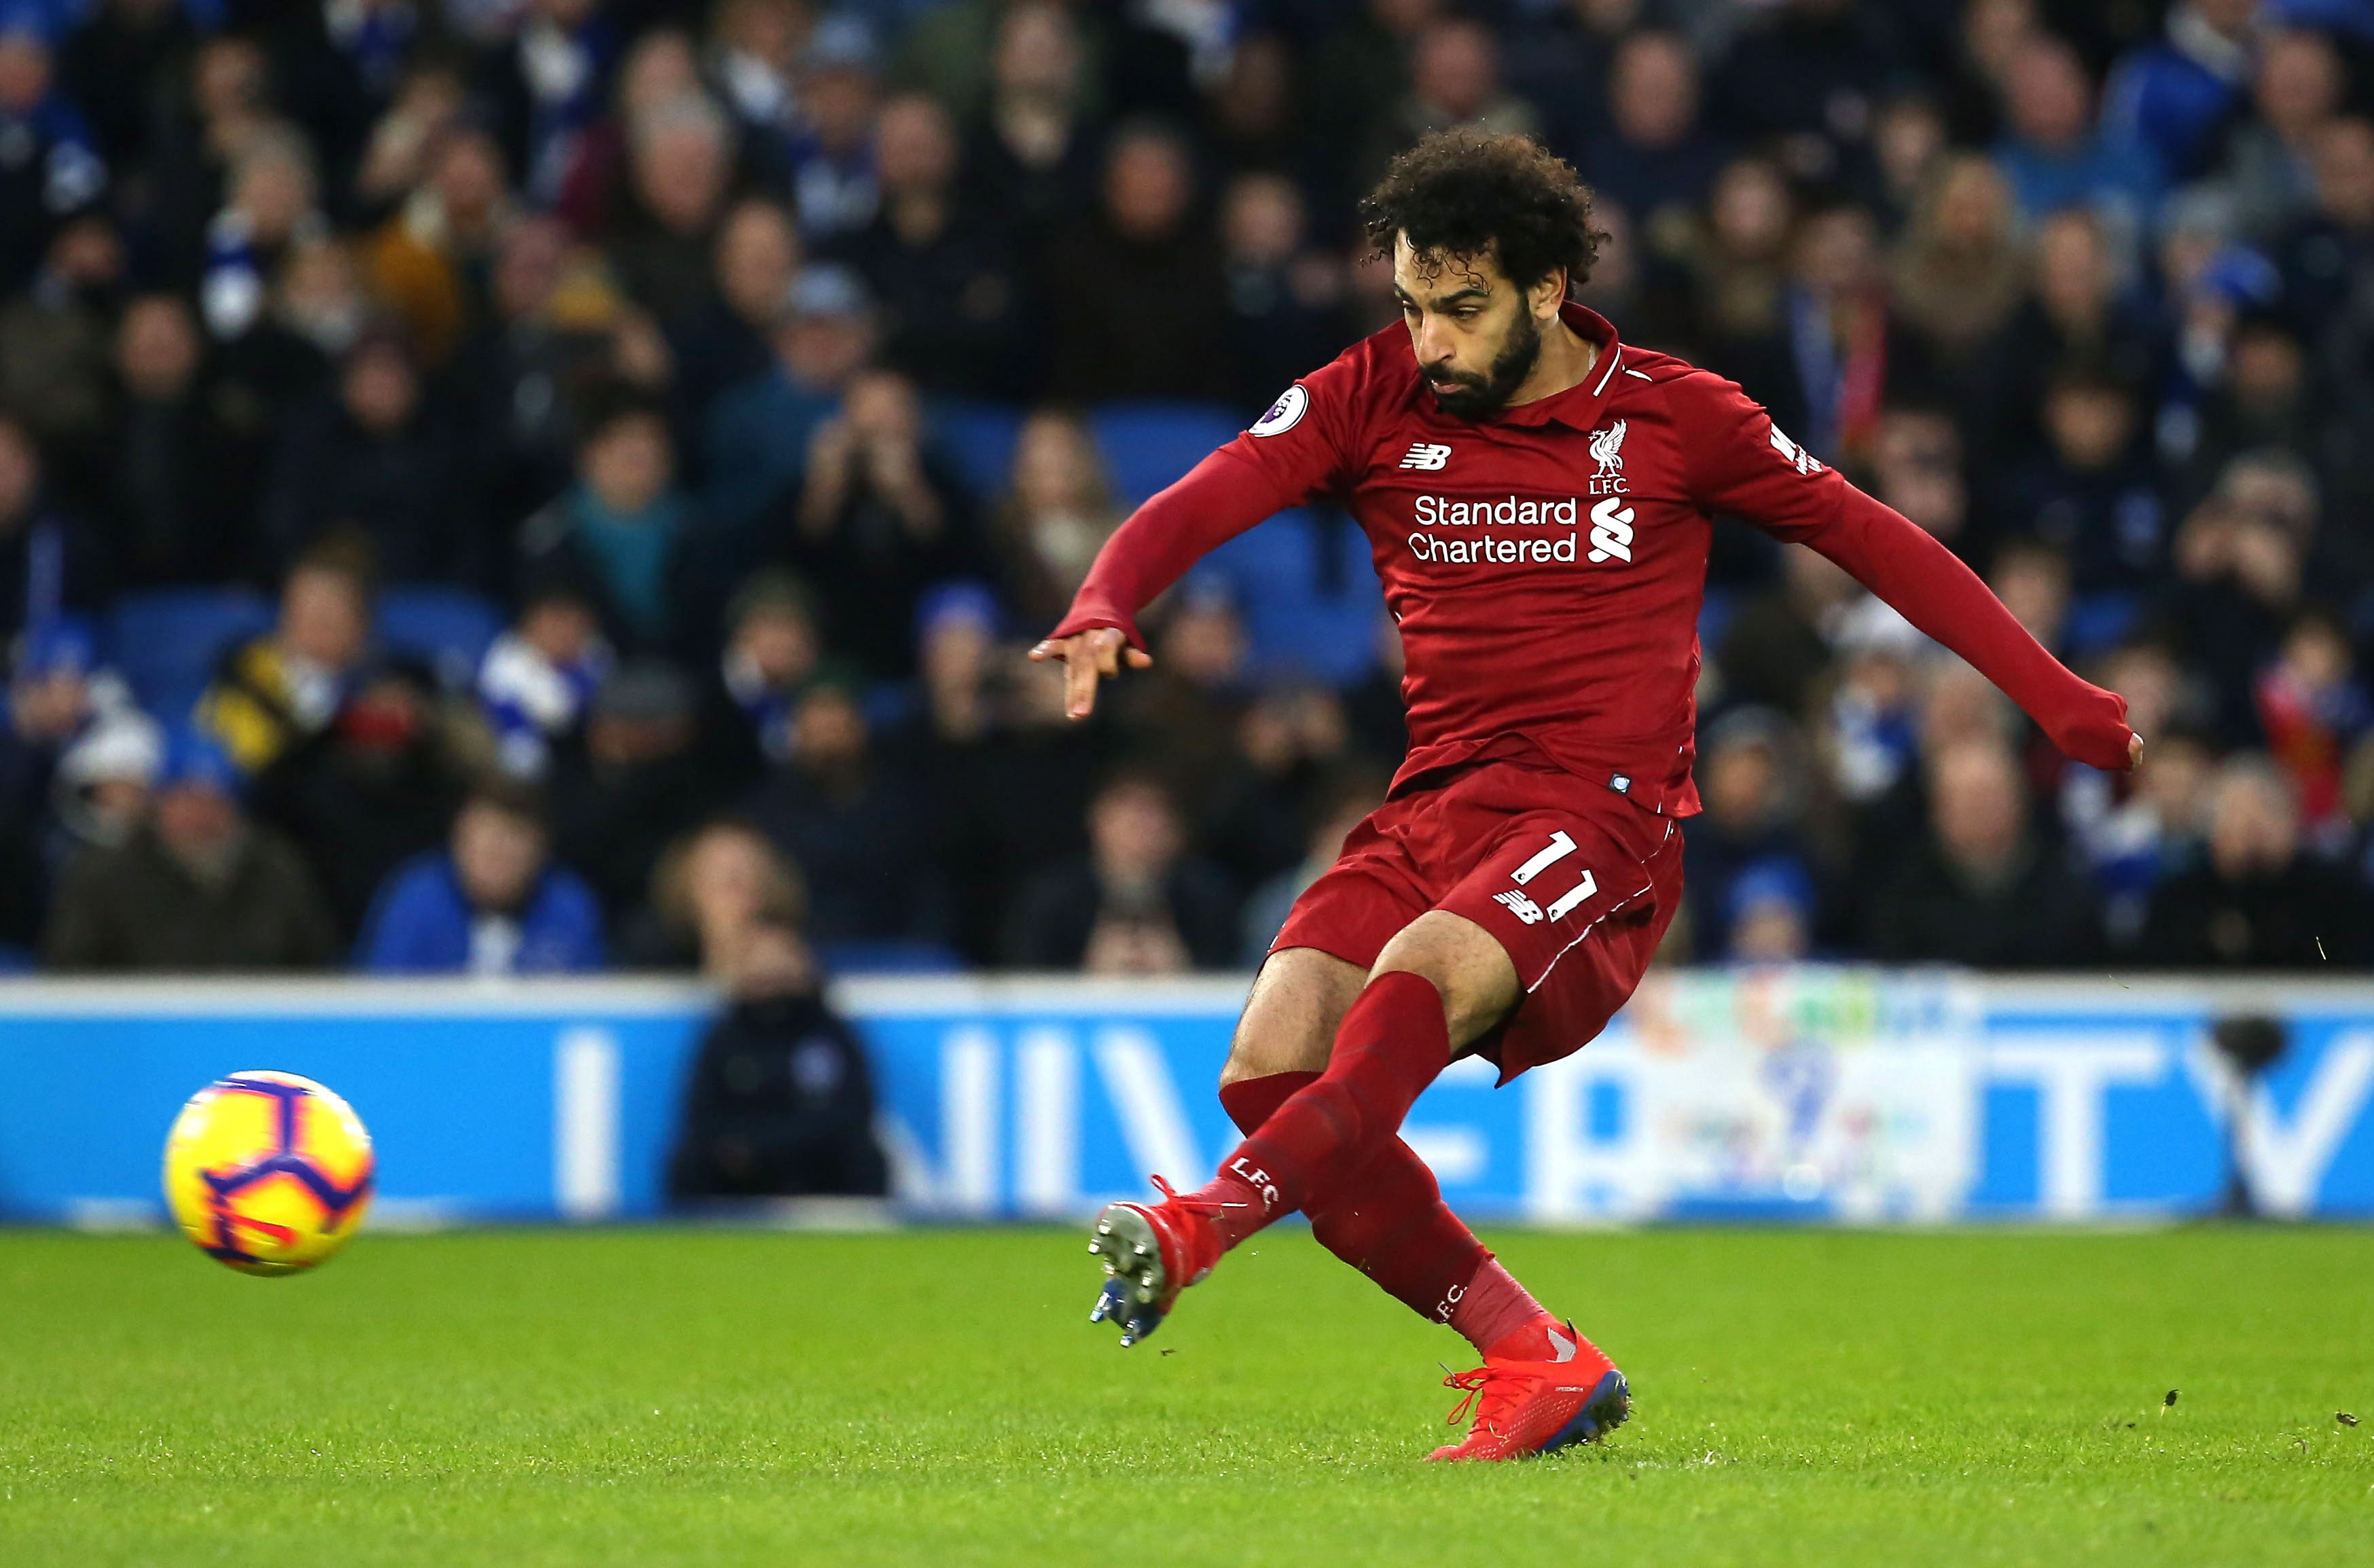 JB 3. Brighton (United Kingdom), 12/01/2019.- Liverpool's Mohamed Salah scores the opening goal during the English Premier League soccer match between Brighton Hove Albion and Liverpool at the Amex Stadium in Brighton, Britain, 12 January 2019. EFE/EPA/James Boardman EDITORIAL USE ONLY. No use with unauthorized audio, video, data, fixture lists, club/league logos or 'live' services. Online in-match use limited to 120 images, no video emulation. No use in betting, games or single club/league/player publications